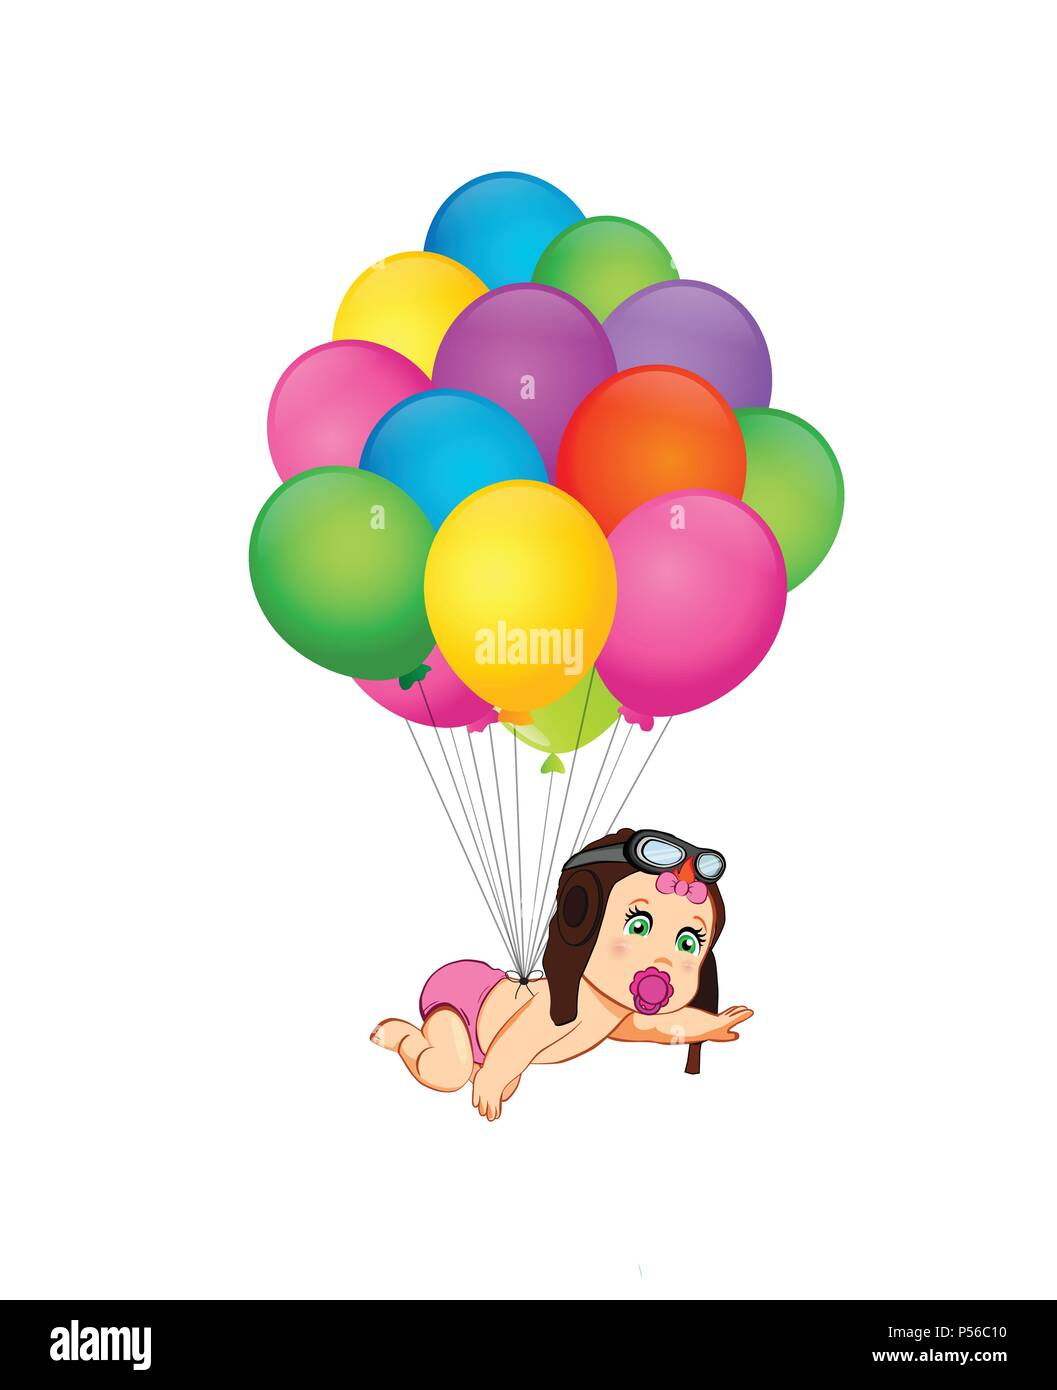 d8fd8959716 Its a girl cartoon vector illustration with cute baby girl in pilot hat  flying on bunch of colorful helium balloons on white background. Baby  shower g